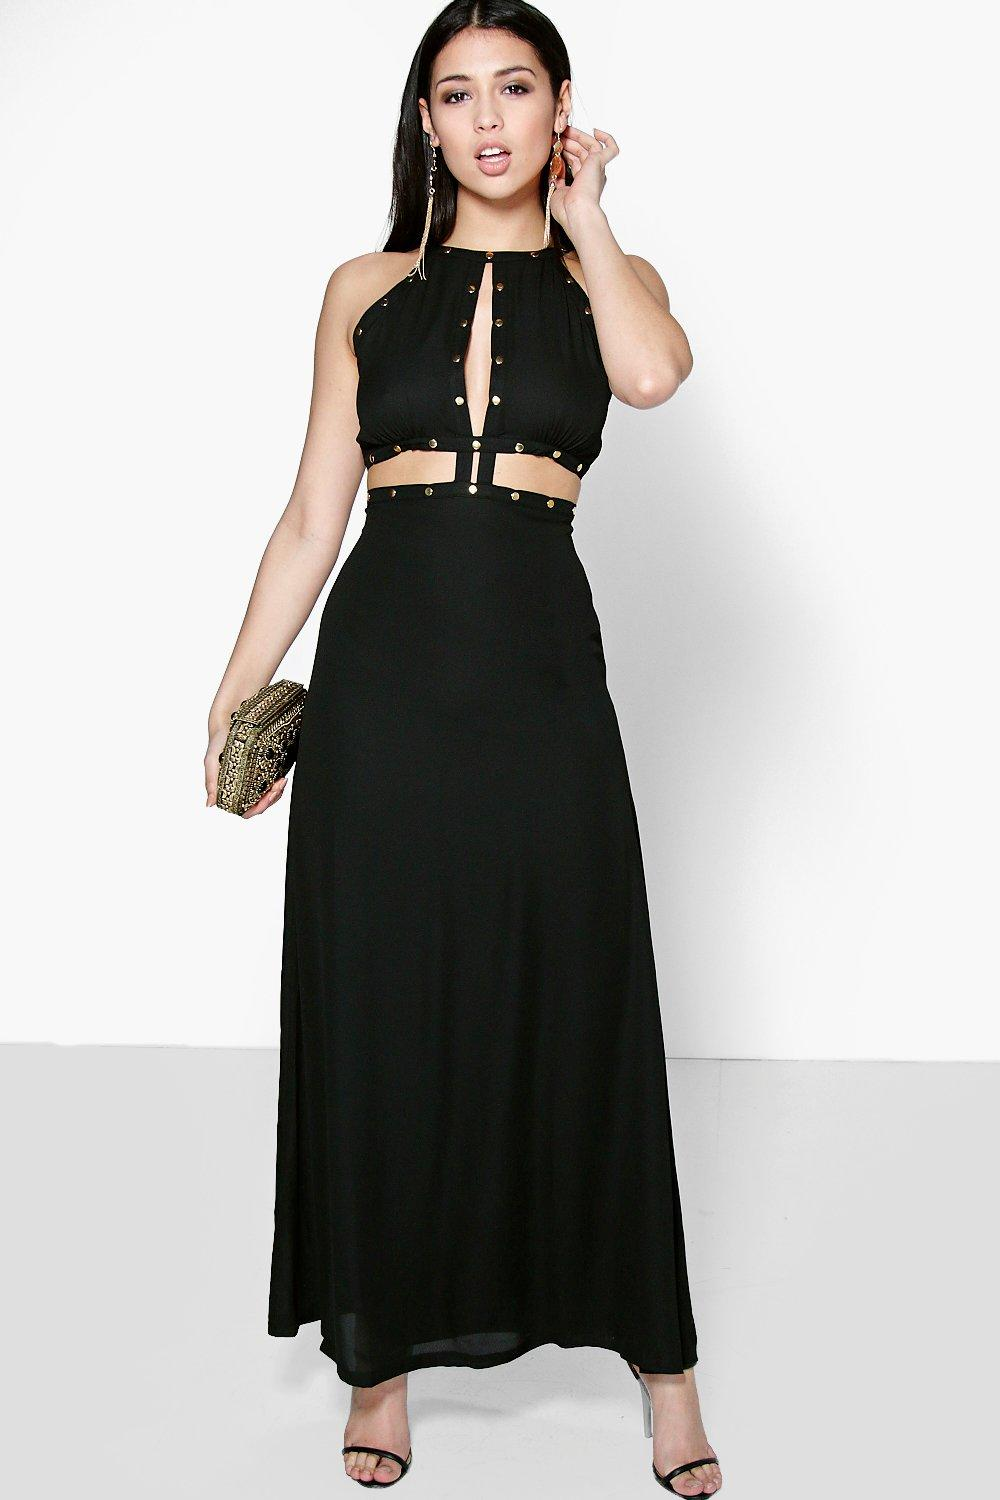 Molly Stud Trim Cutwork Tie Back Maxi Dress